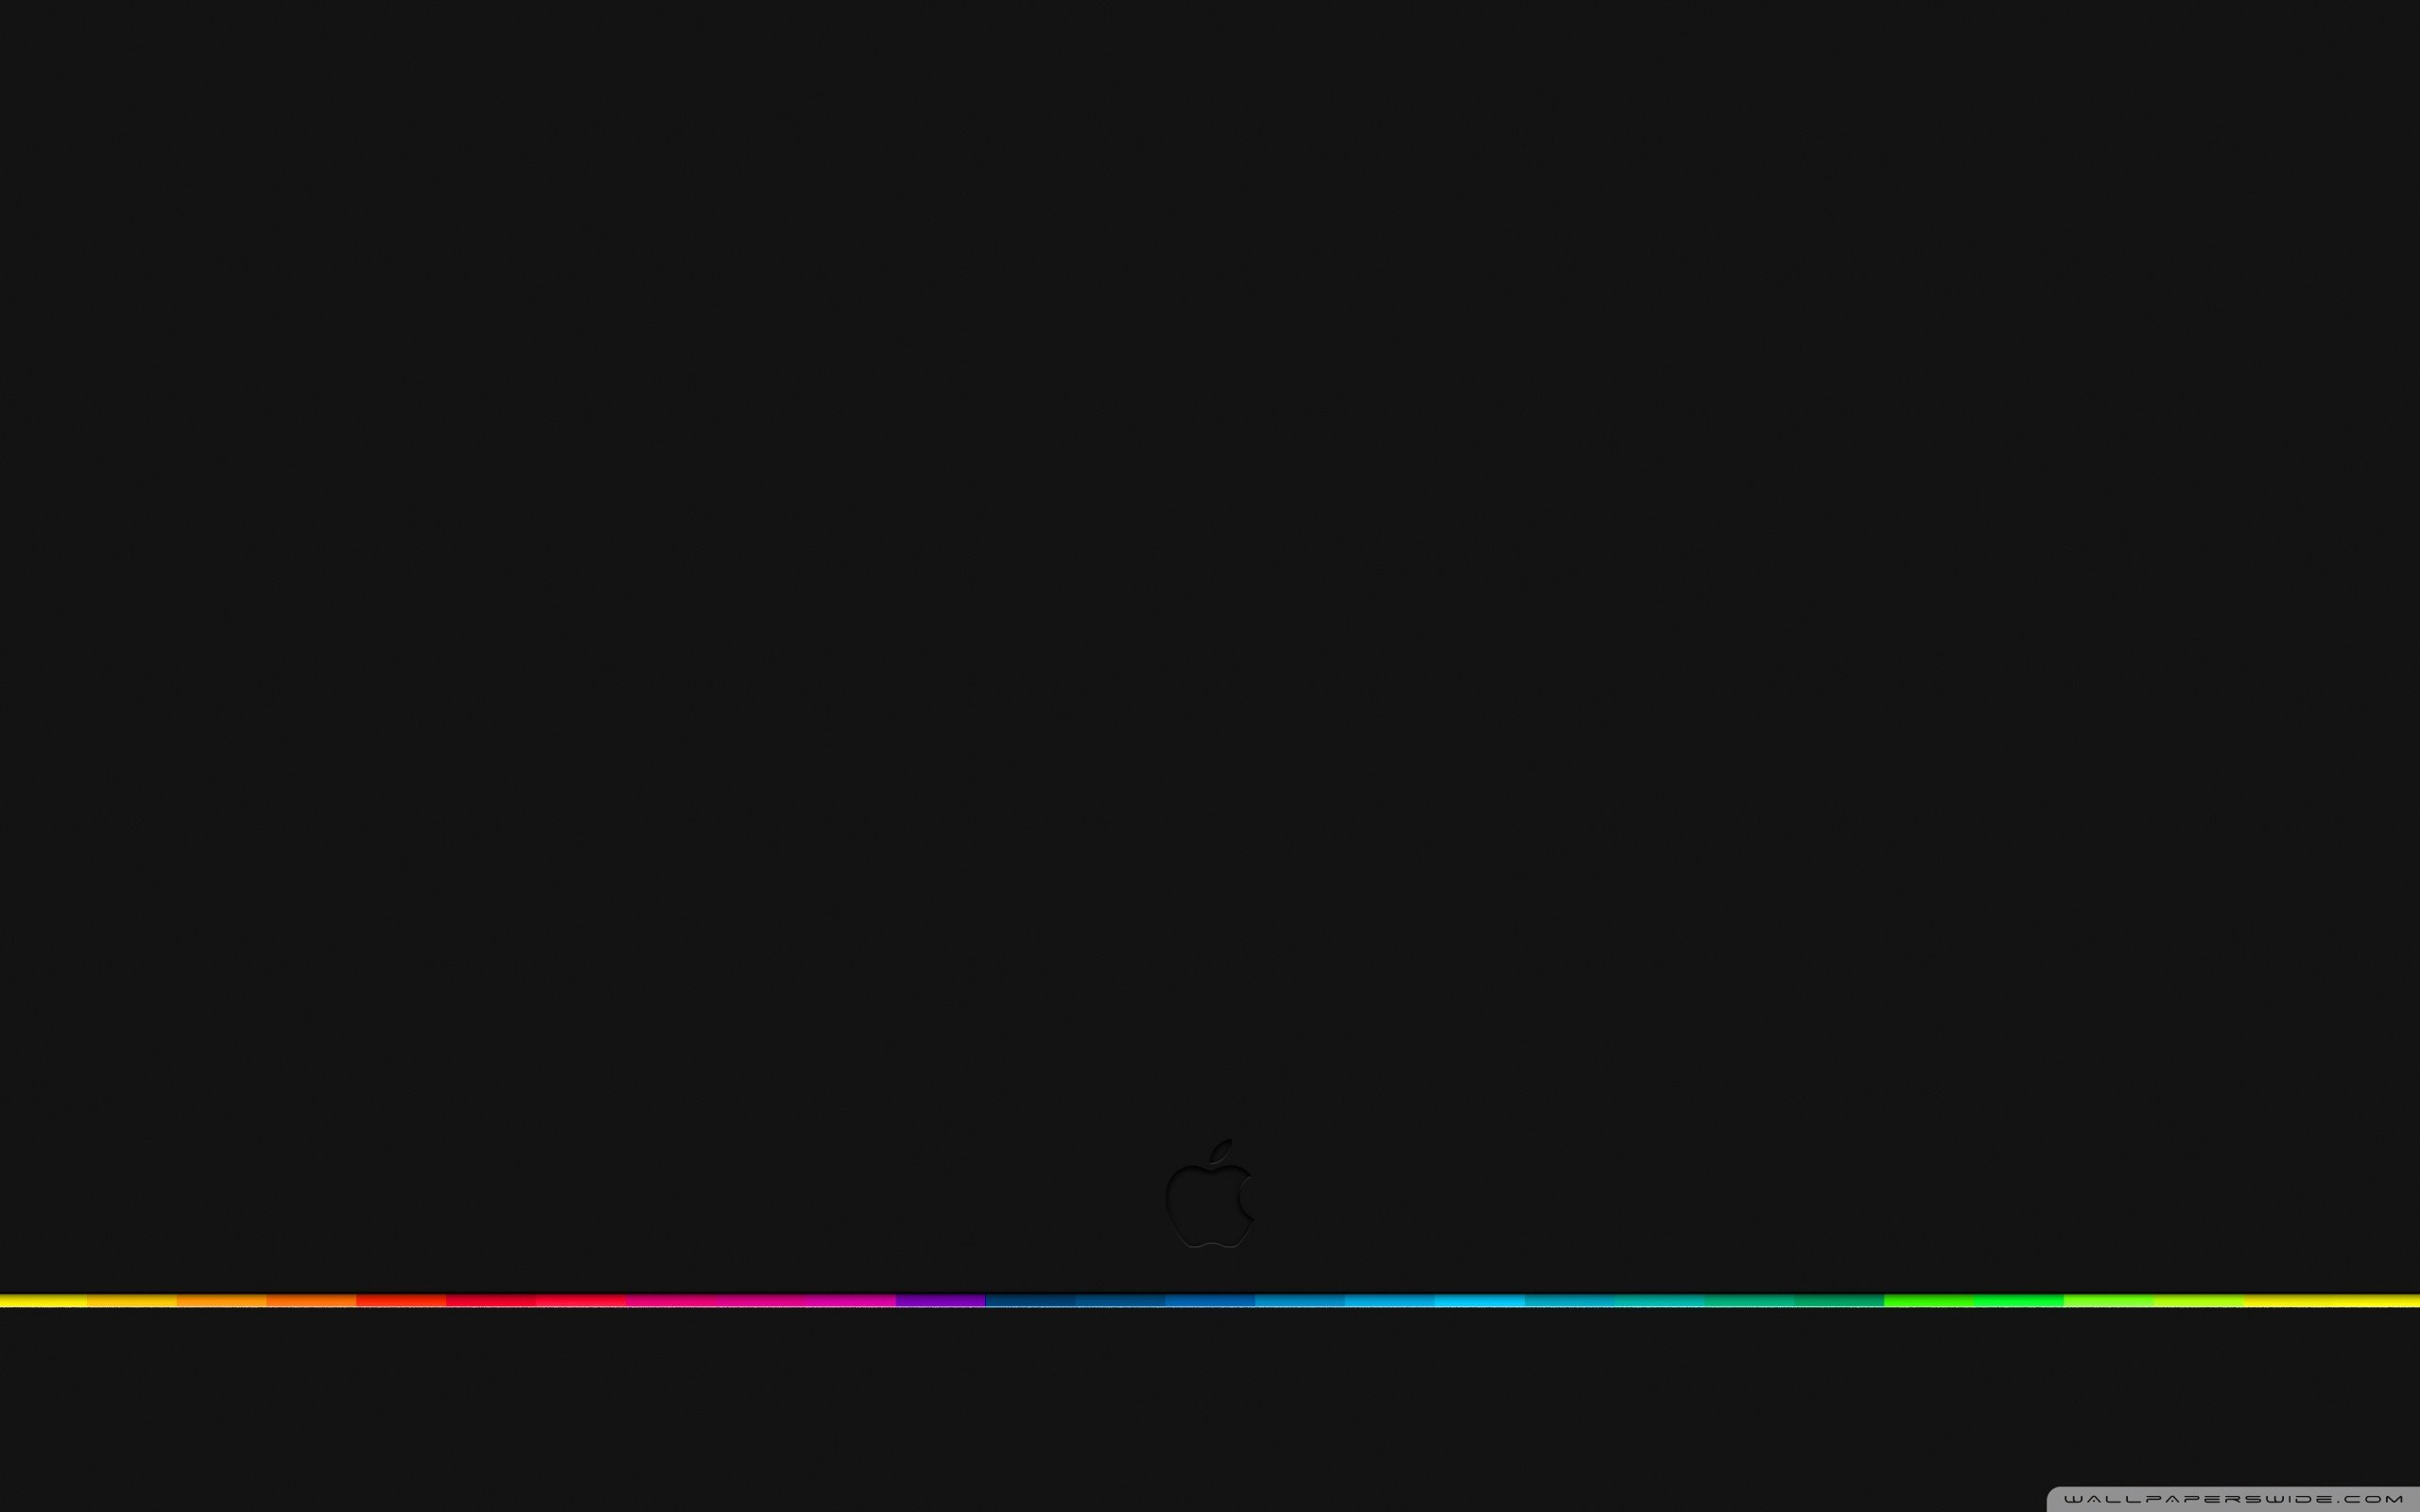 colorful line on black background-wallpaper-2560x1600 wallpaper